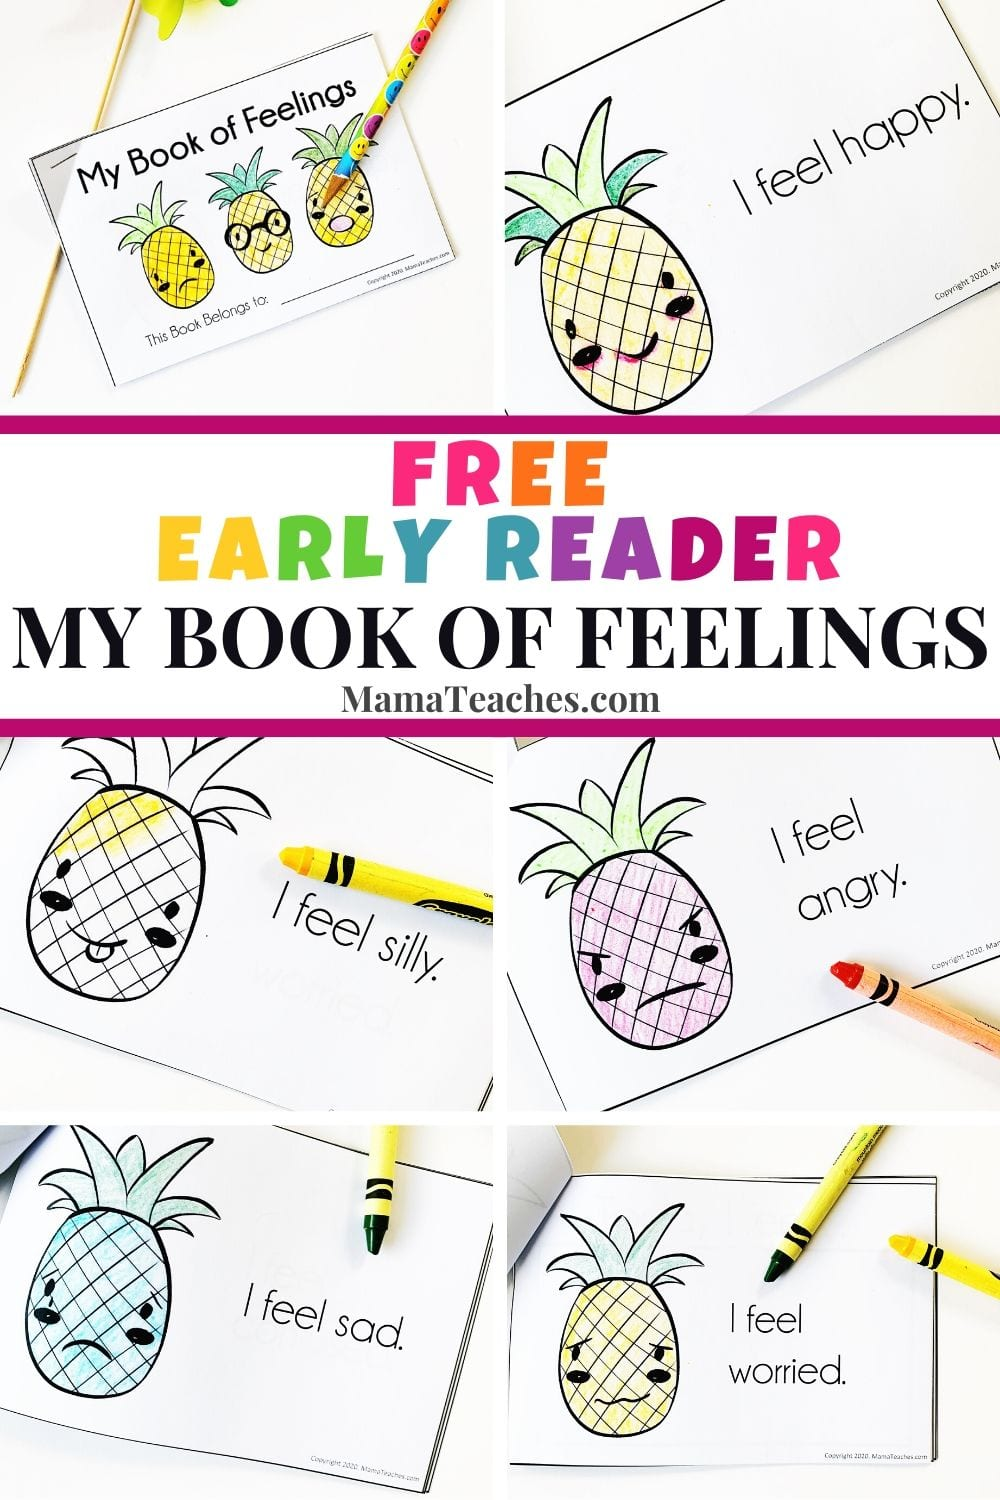 Free Early Reader for Preschool - My Book of Feelings - MamaTeaches.com